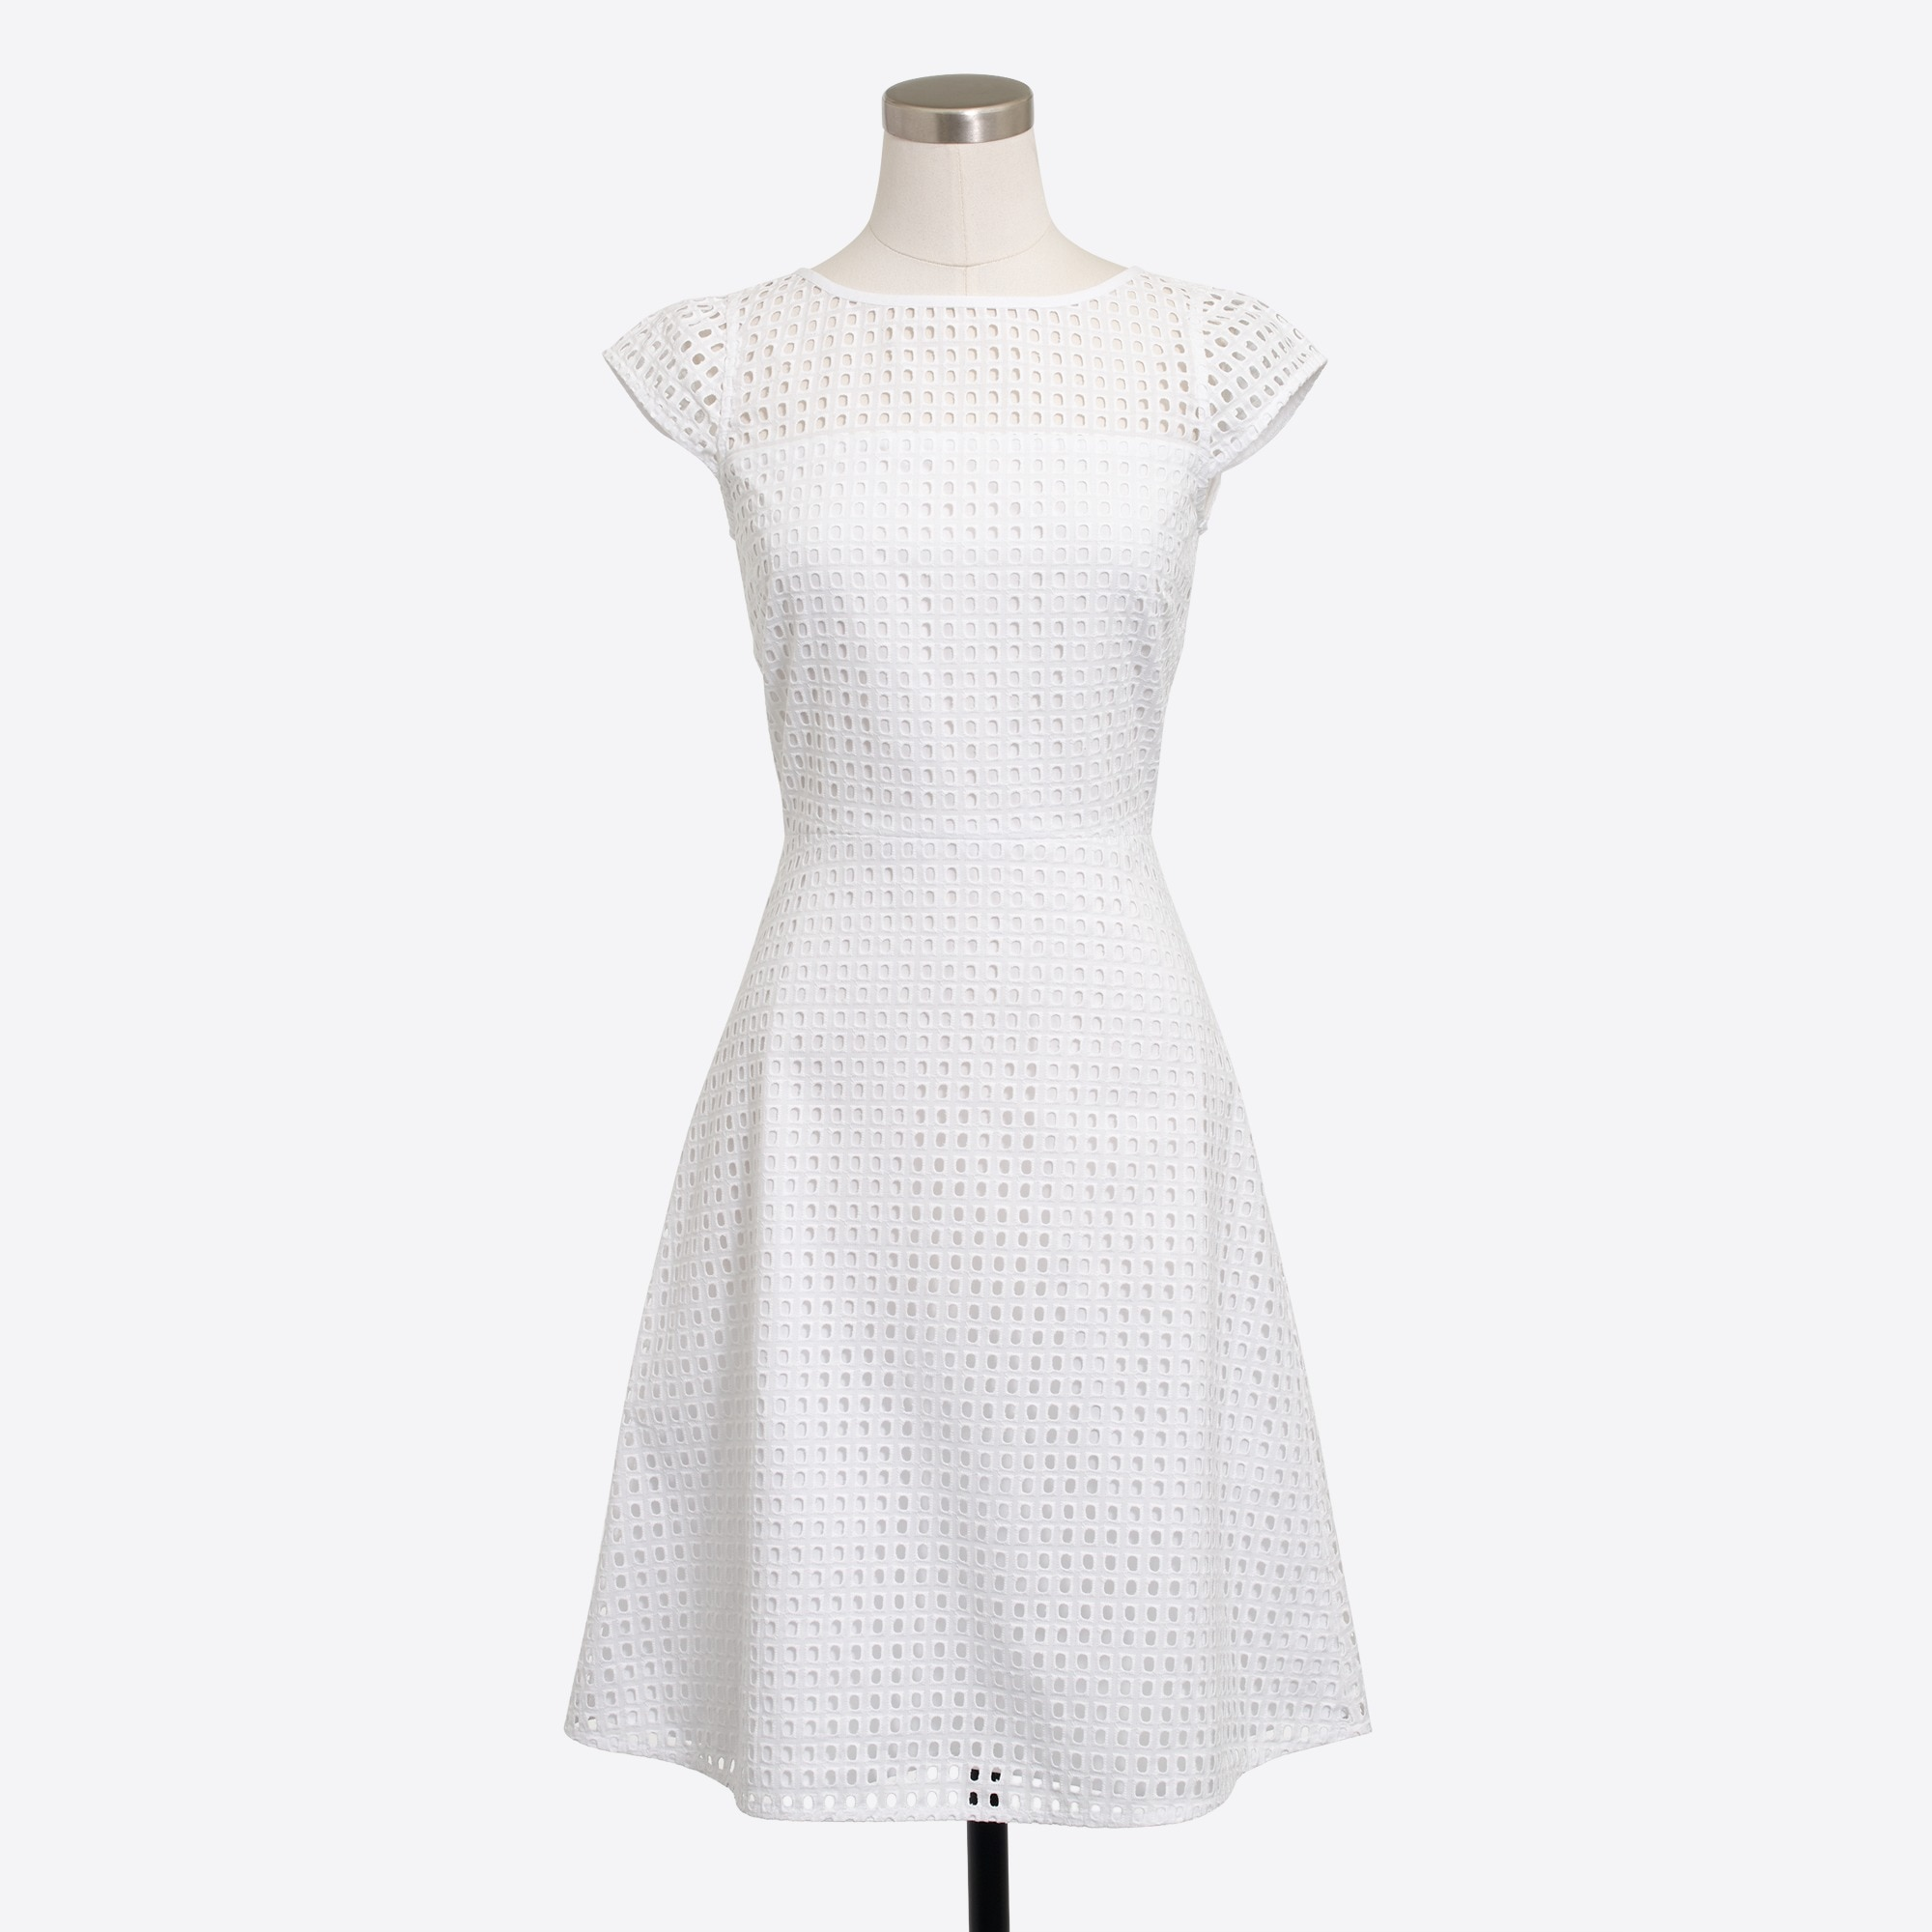 Square-neck eyelet dress